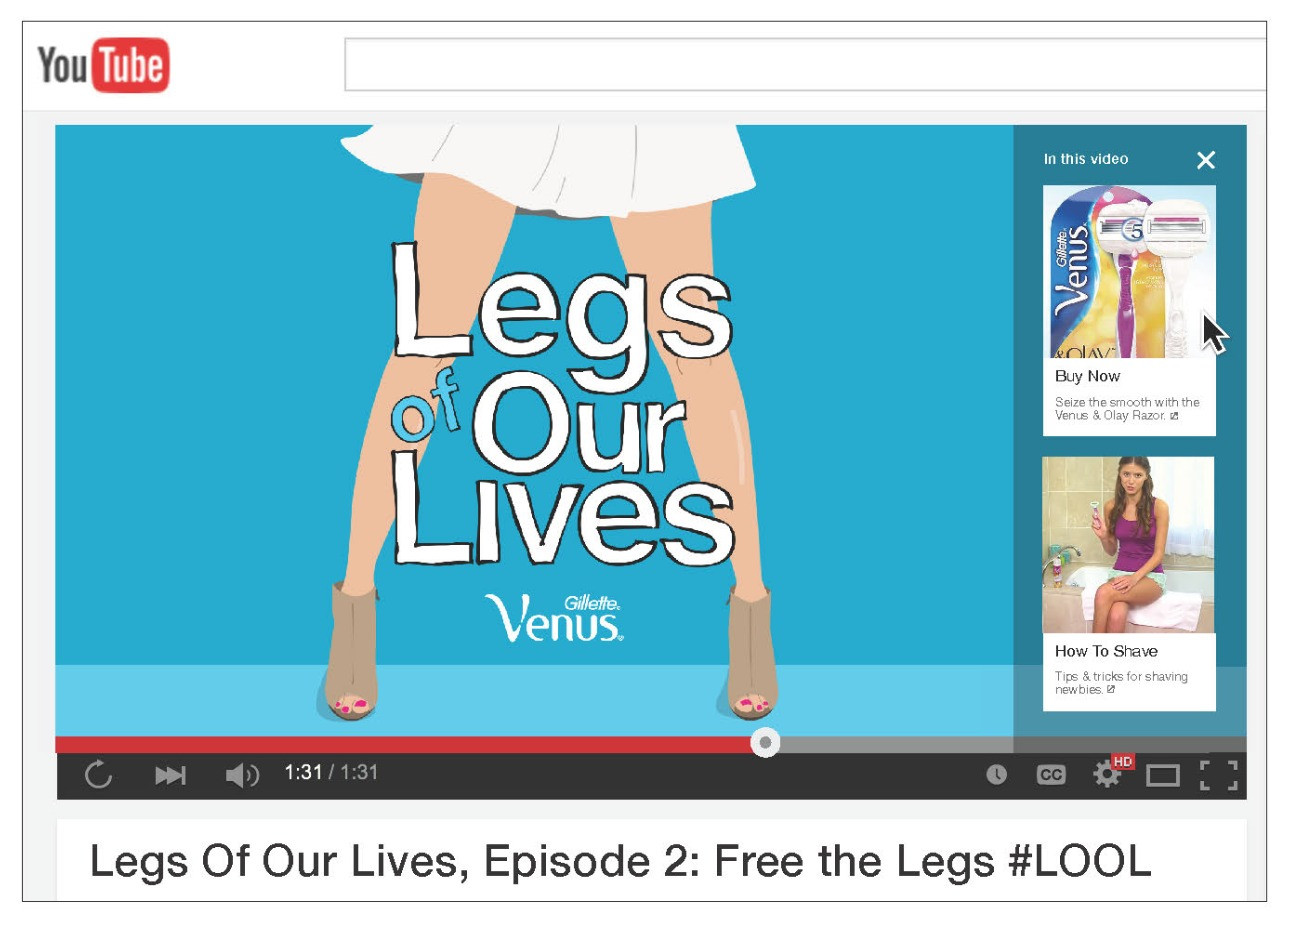 Legs of Our Lives